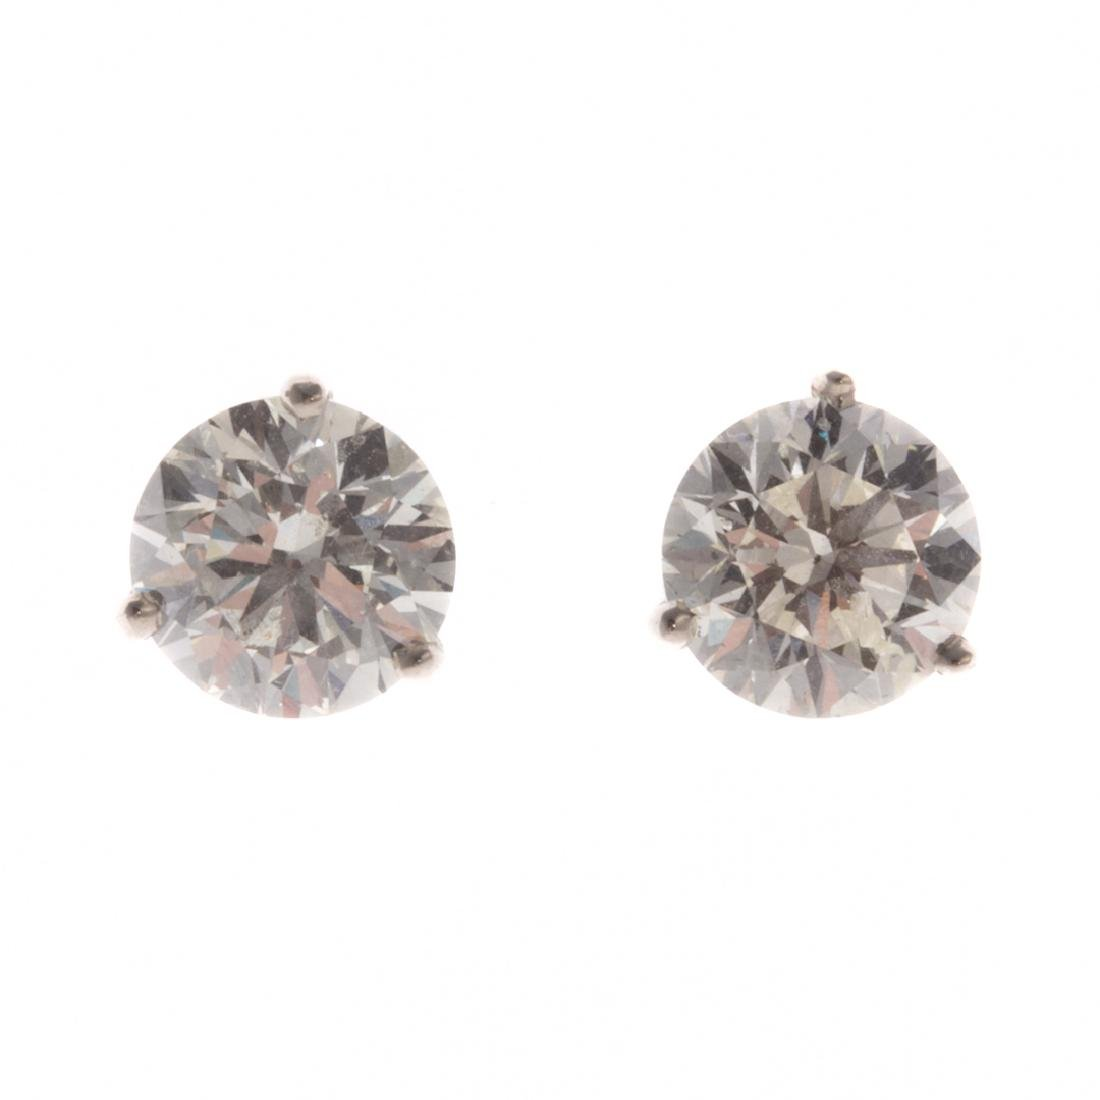 A Pair of Diamond Solitaire Earrings 4.0 Cts.